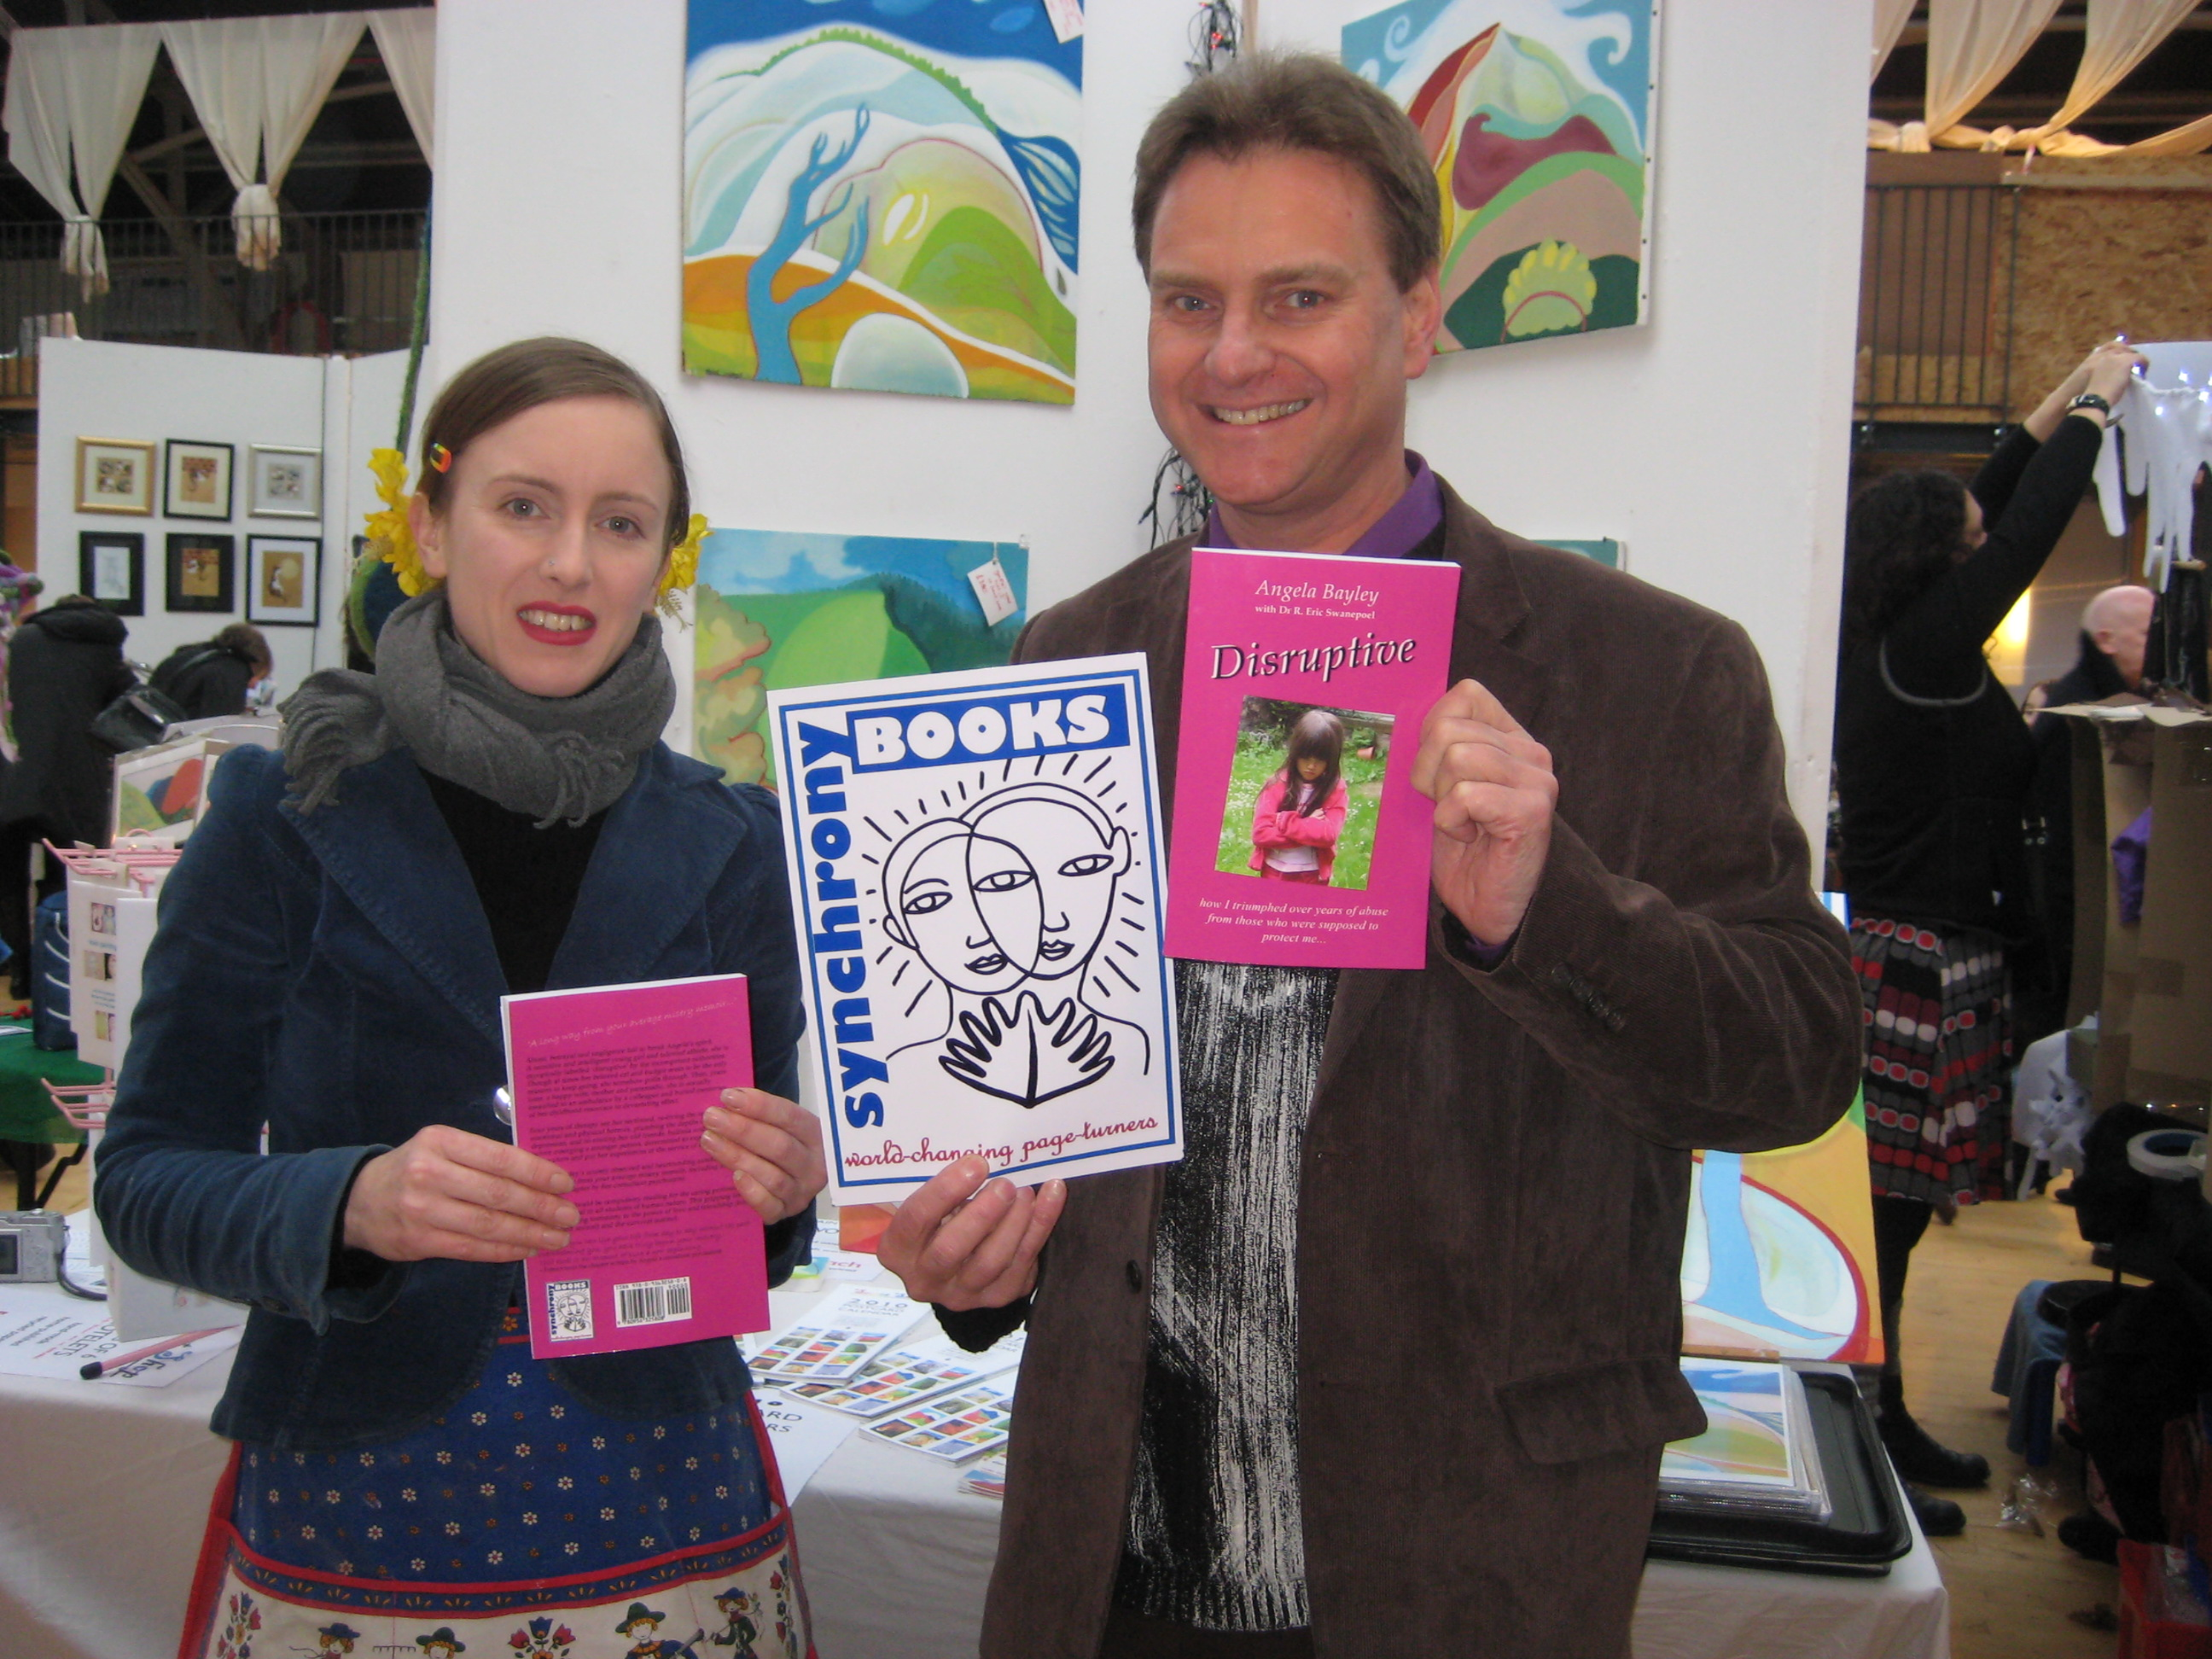 Clare Galloway and Eric Swanepoel display the Synchrony Books logo, designed by Clare, and copies of 'Disruptive', the cover of which was designed by Vroni Holzmann.